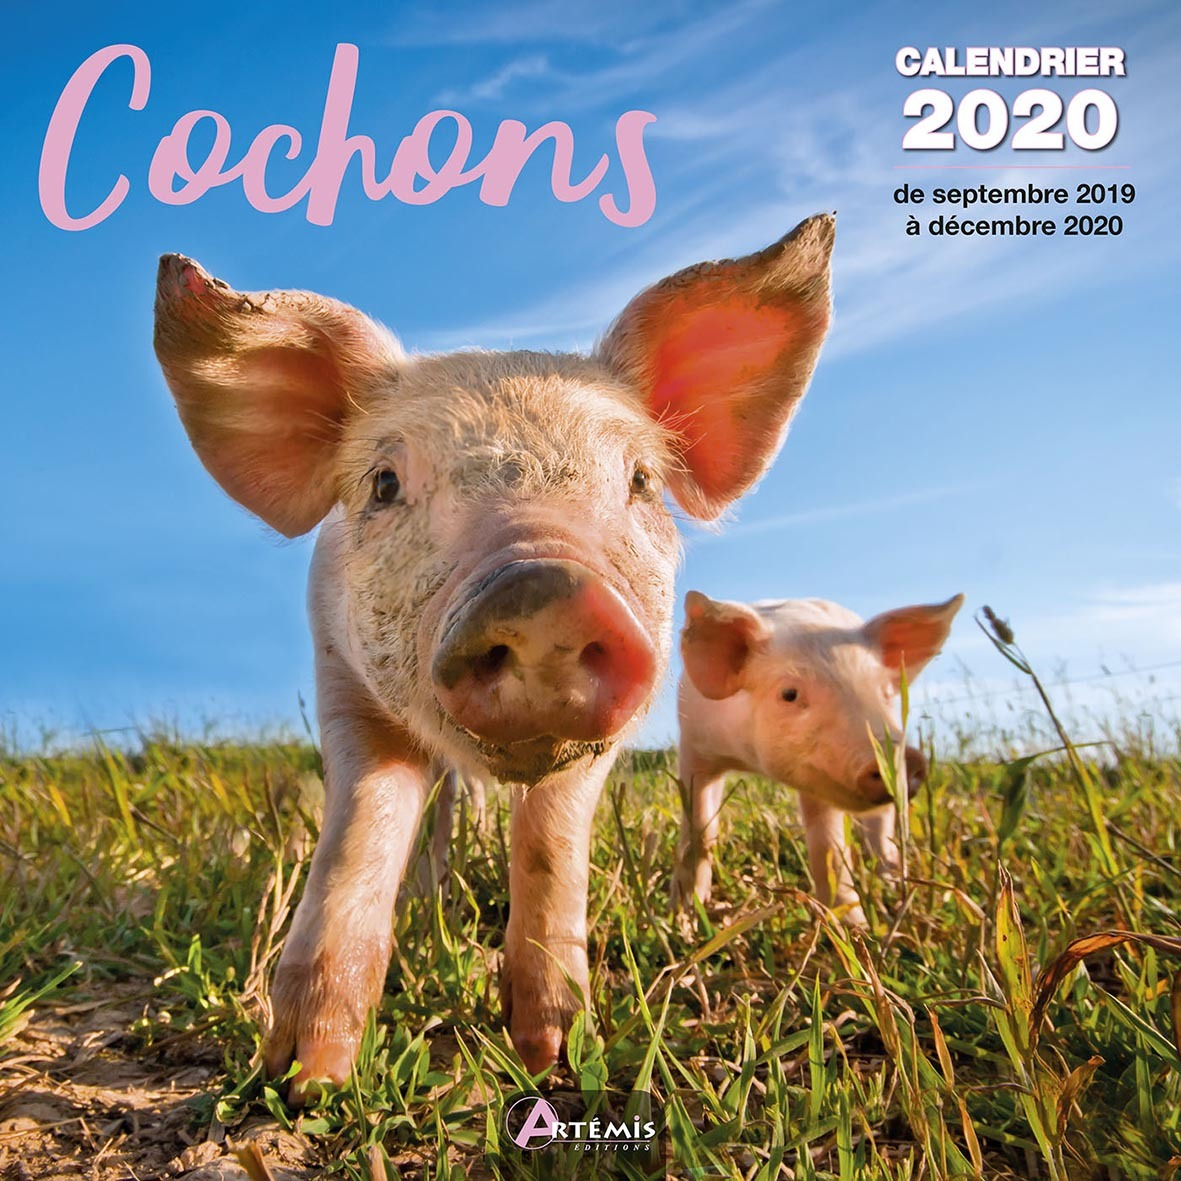 CALENDRIER COCHONS (2020)